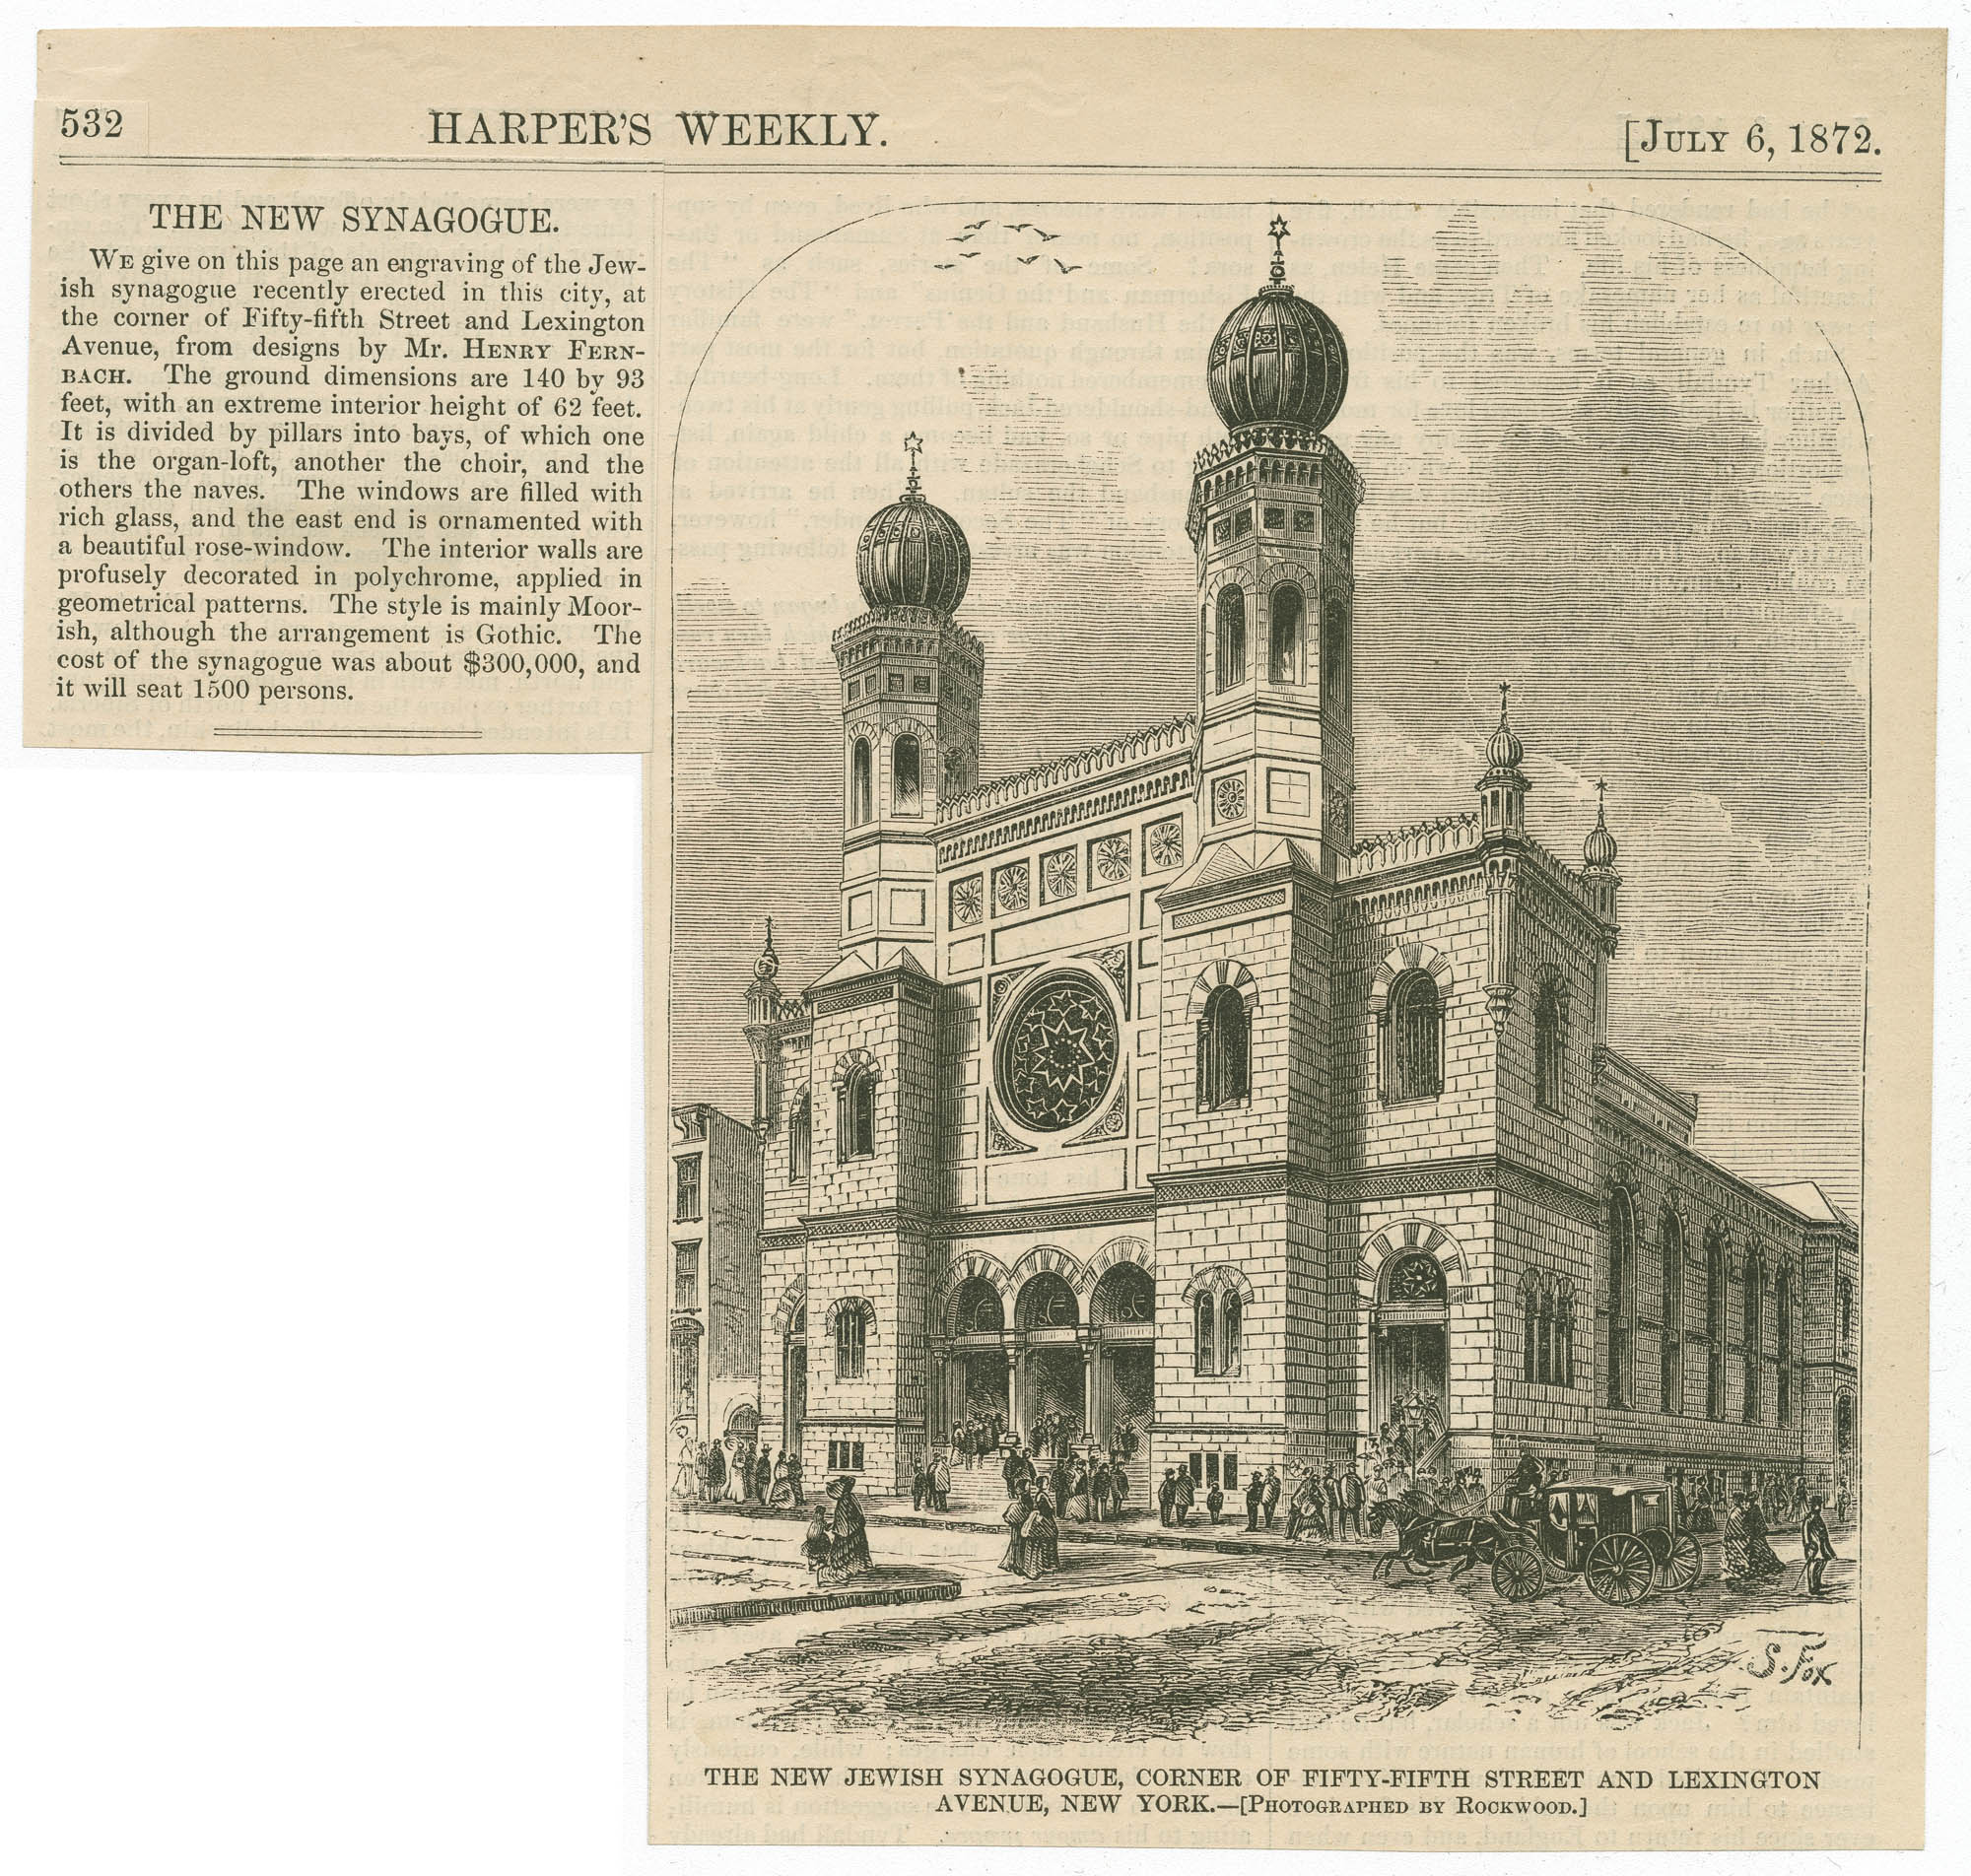 The new Jewish Synagogue, corner of Fifty-Fifth Street and Lexington Avenue, New York